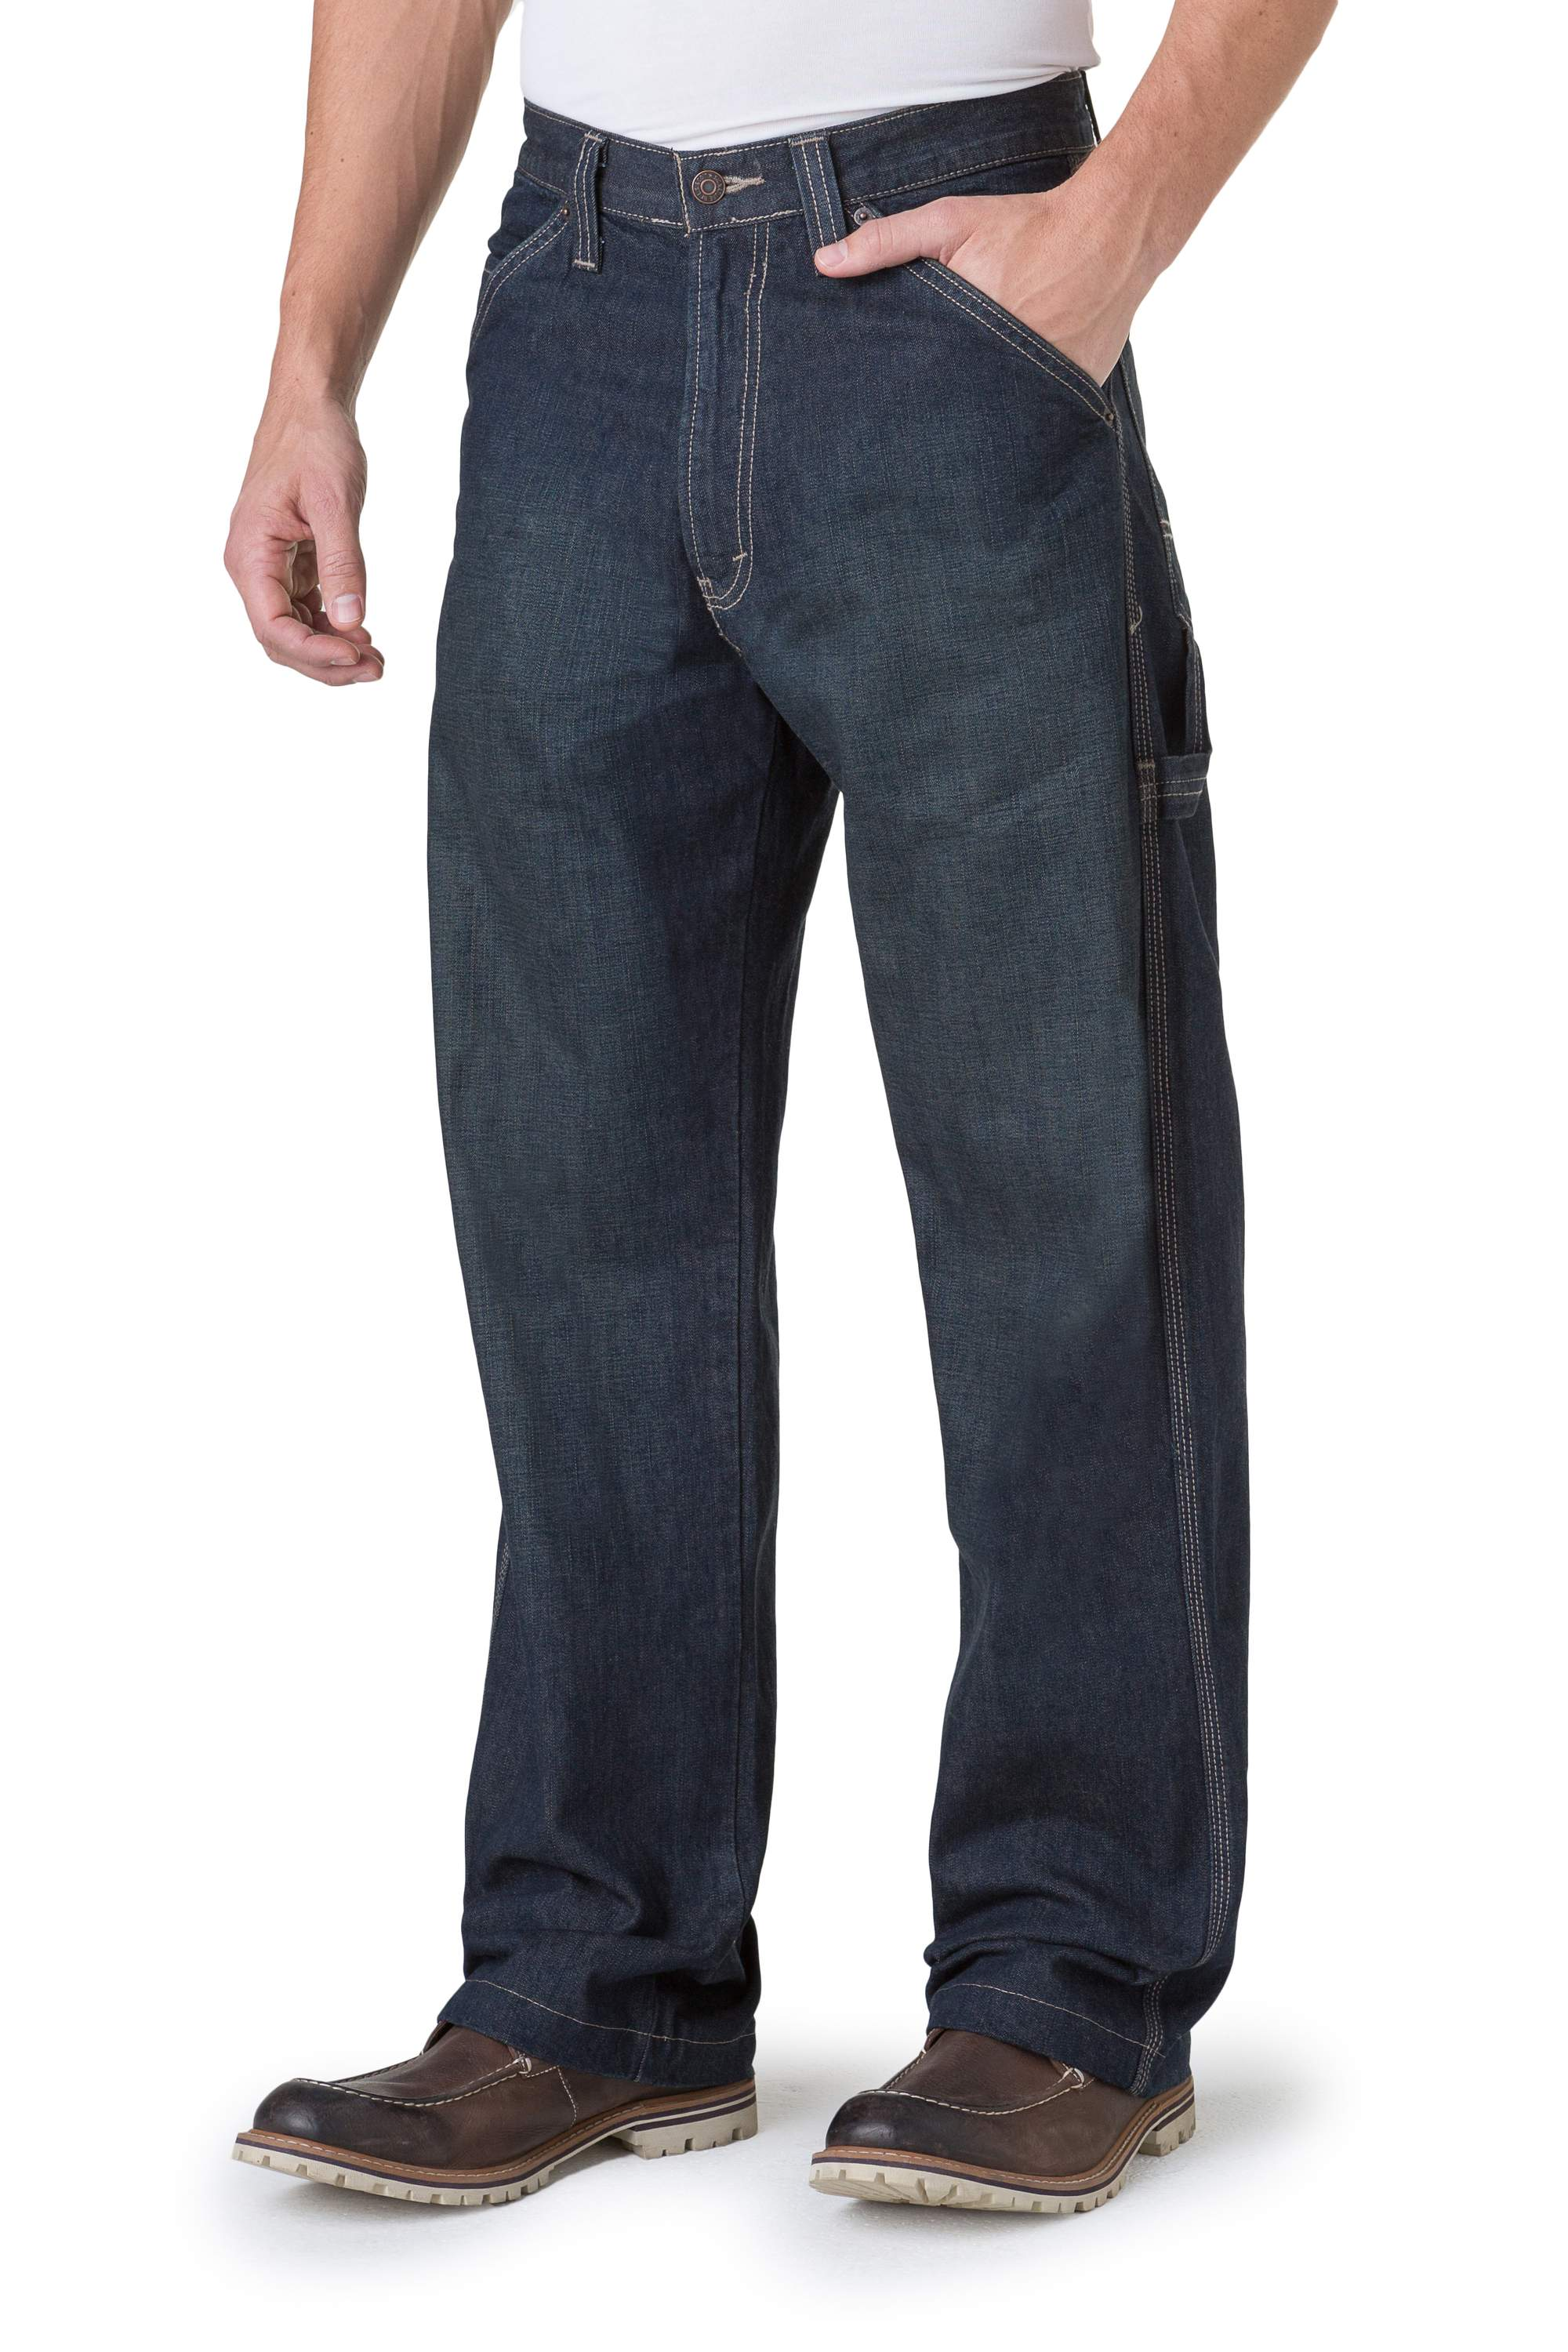 fc245658a64a Signature by Levi Strauss & Co. Men's Carpenter Jeans  - Walmart.com